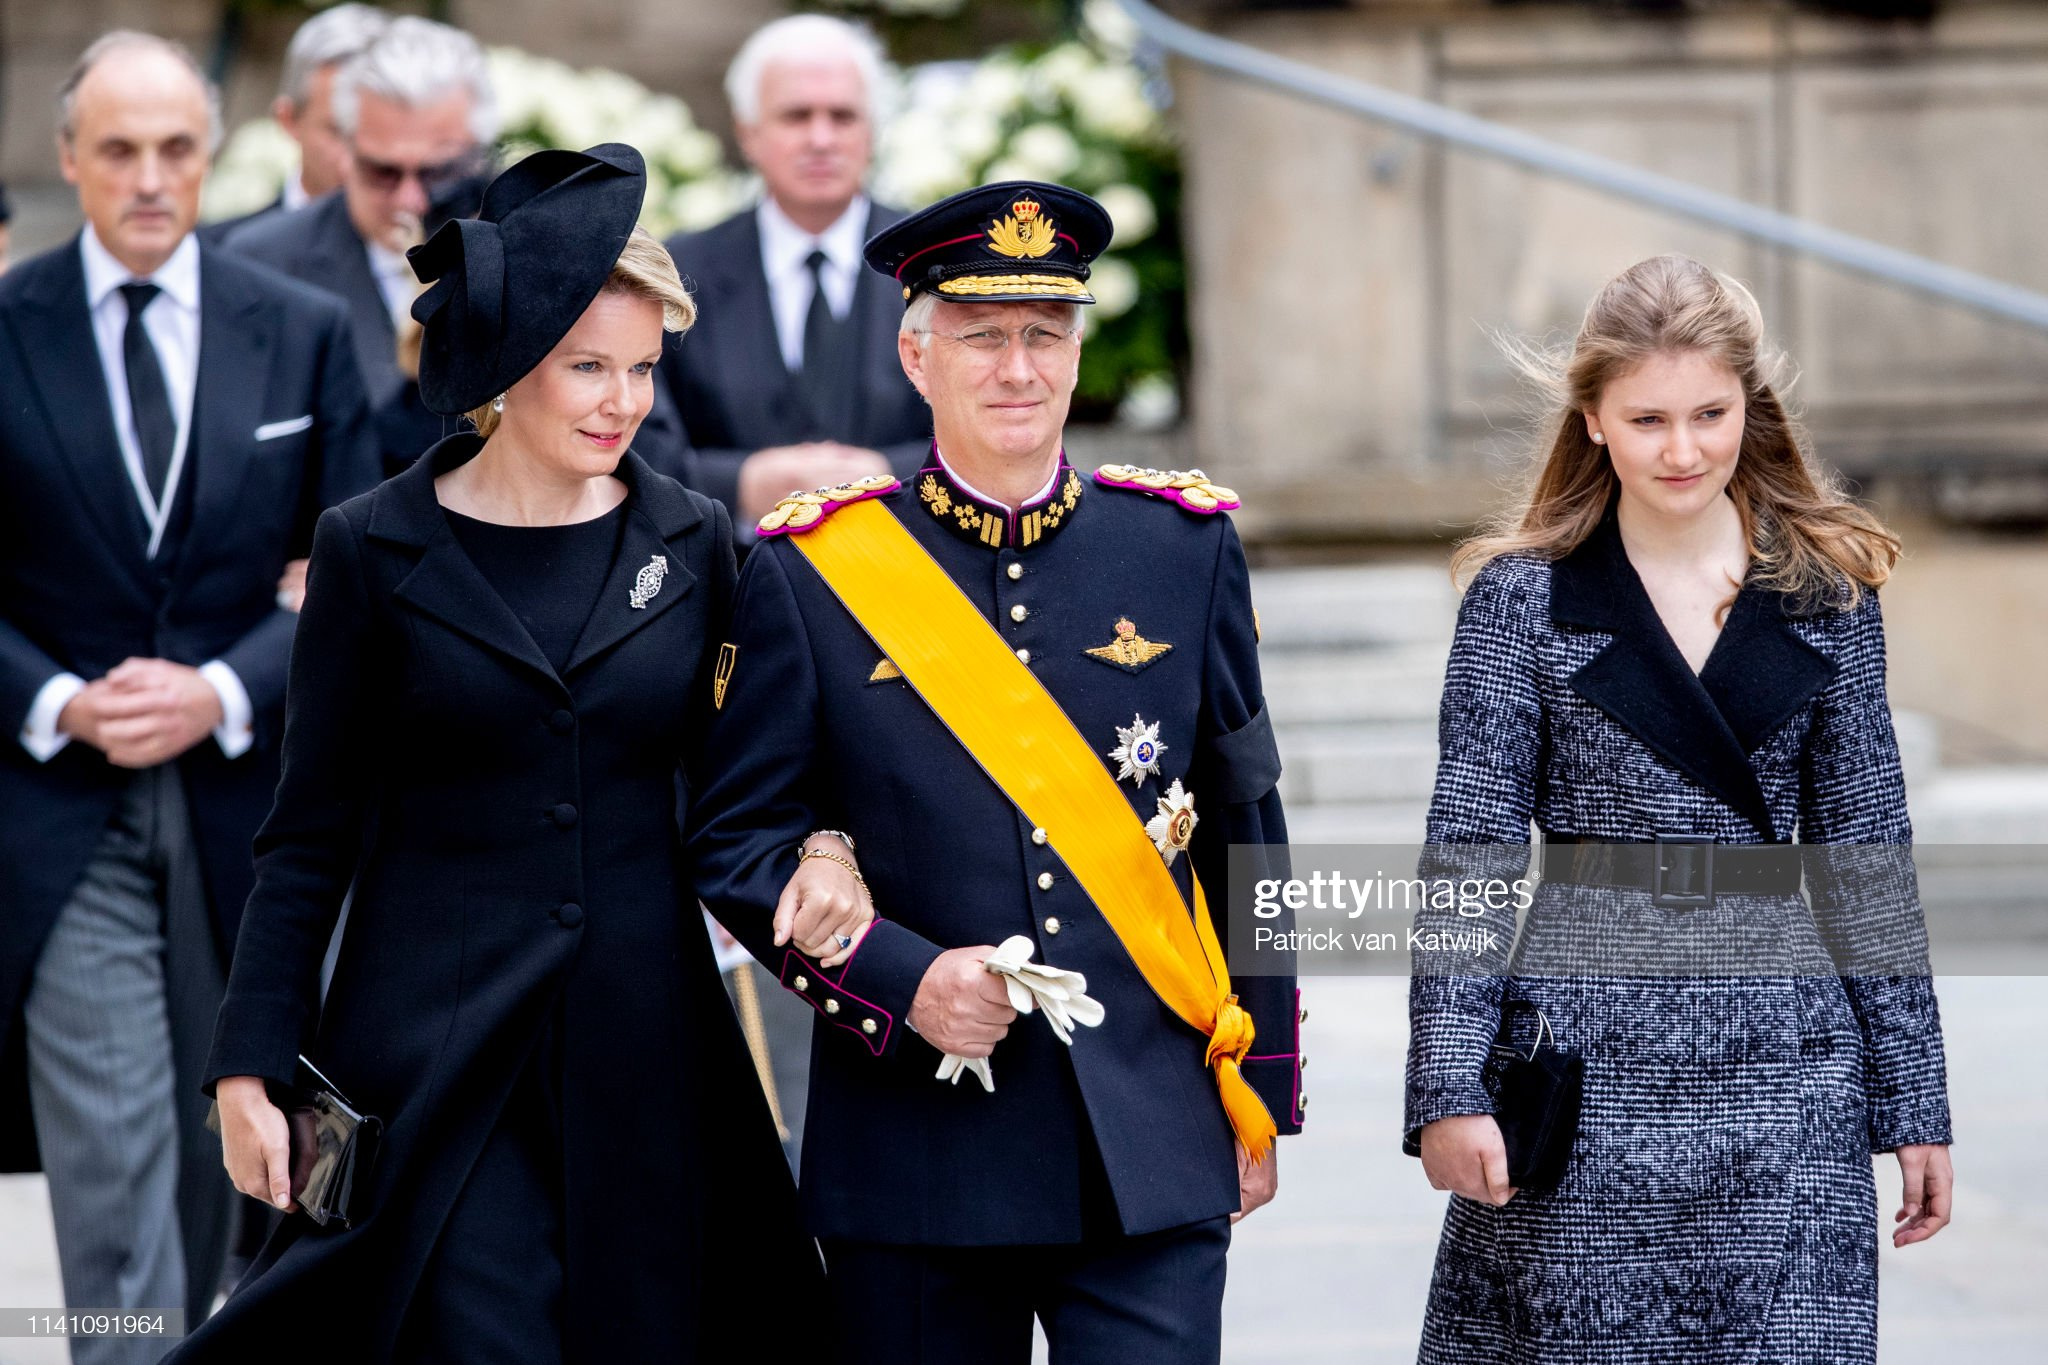 Похороны Великого Герцога Жана https://media.gettyimages.com/photos/king-philippe-of-belgium-queen-mathilde-of-belgium-and-princess-of-picture-id1141091964?s=2048x2048